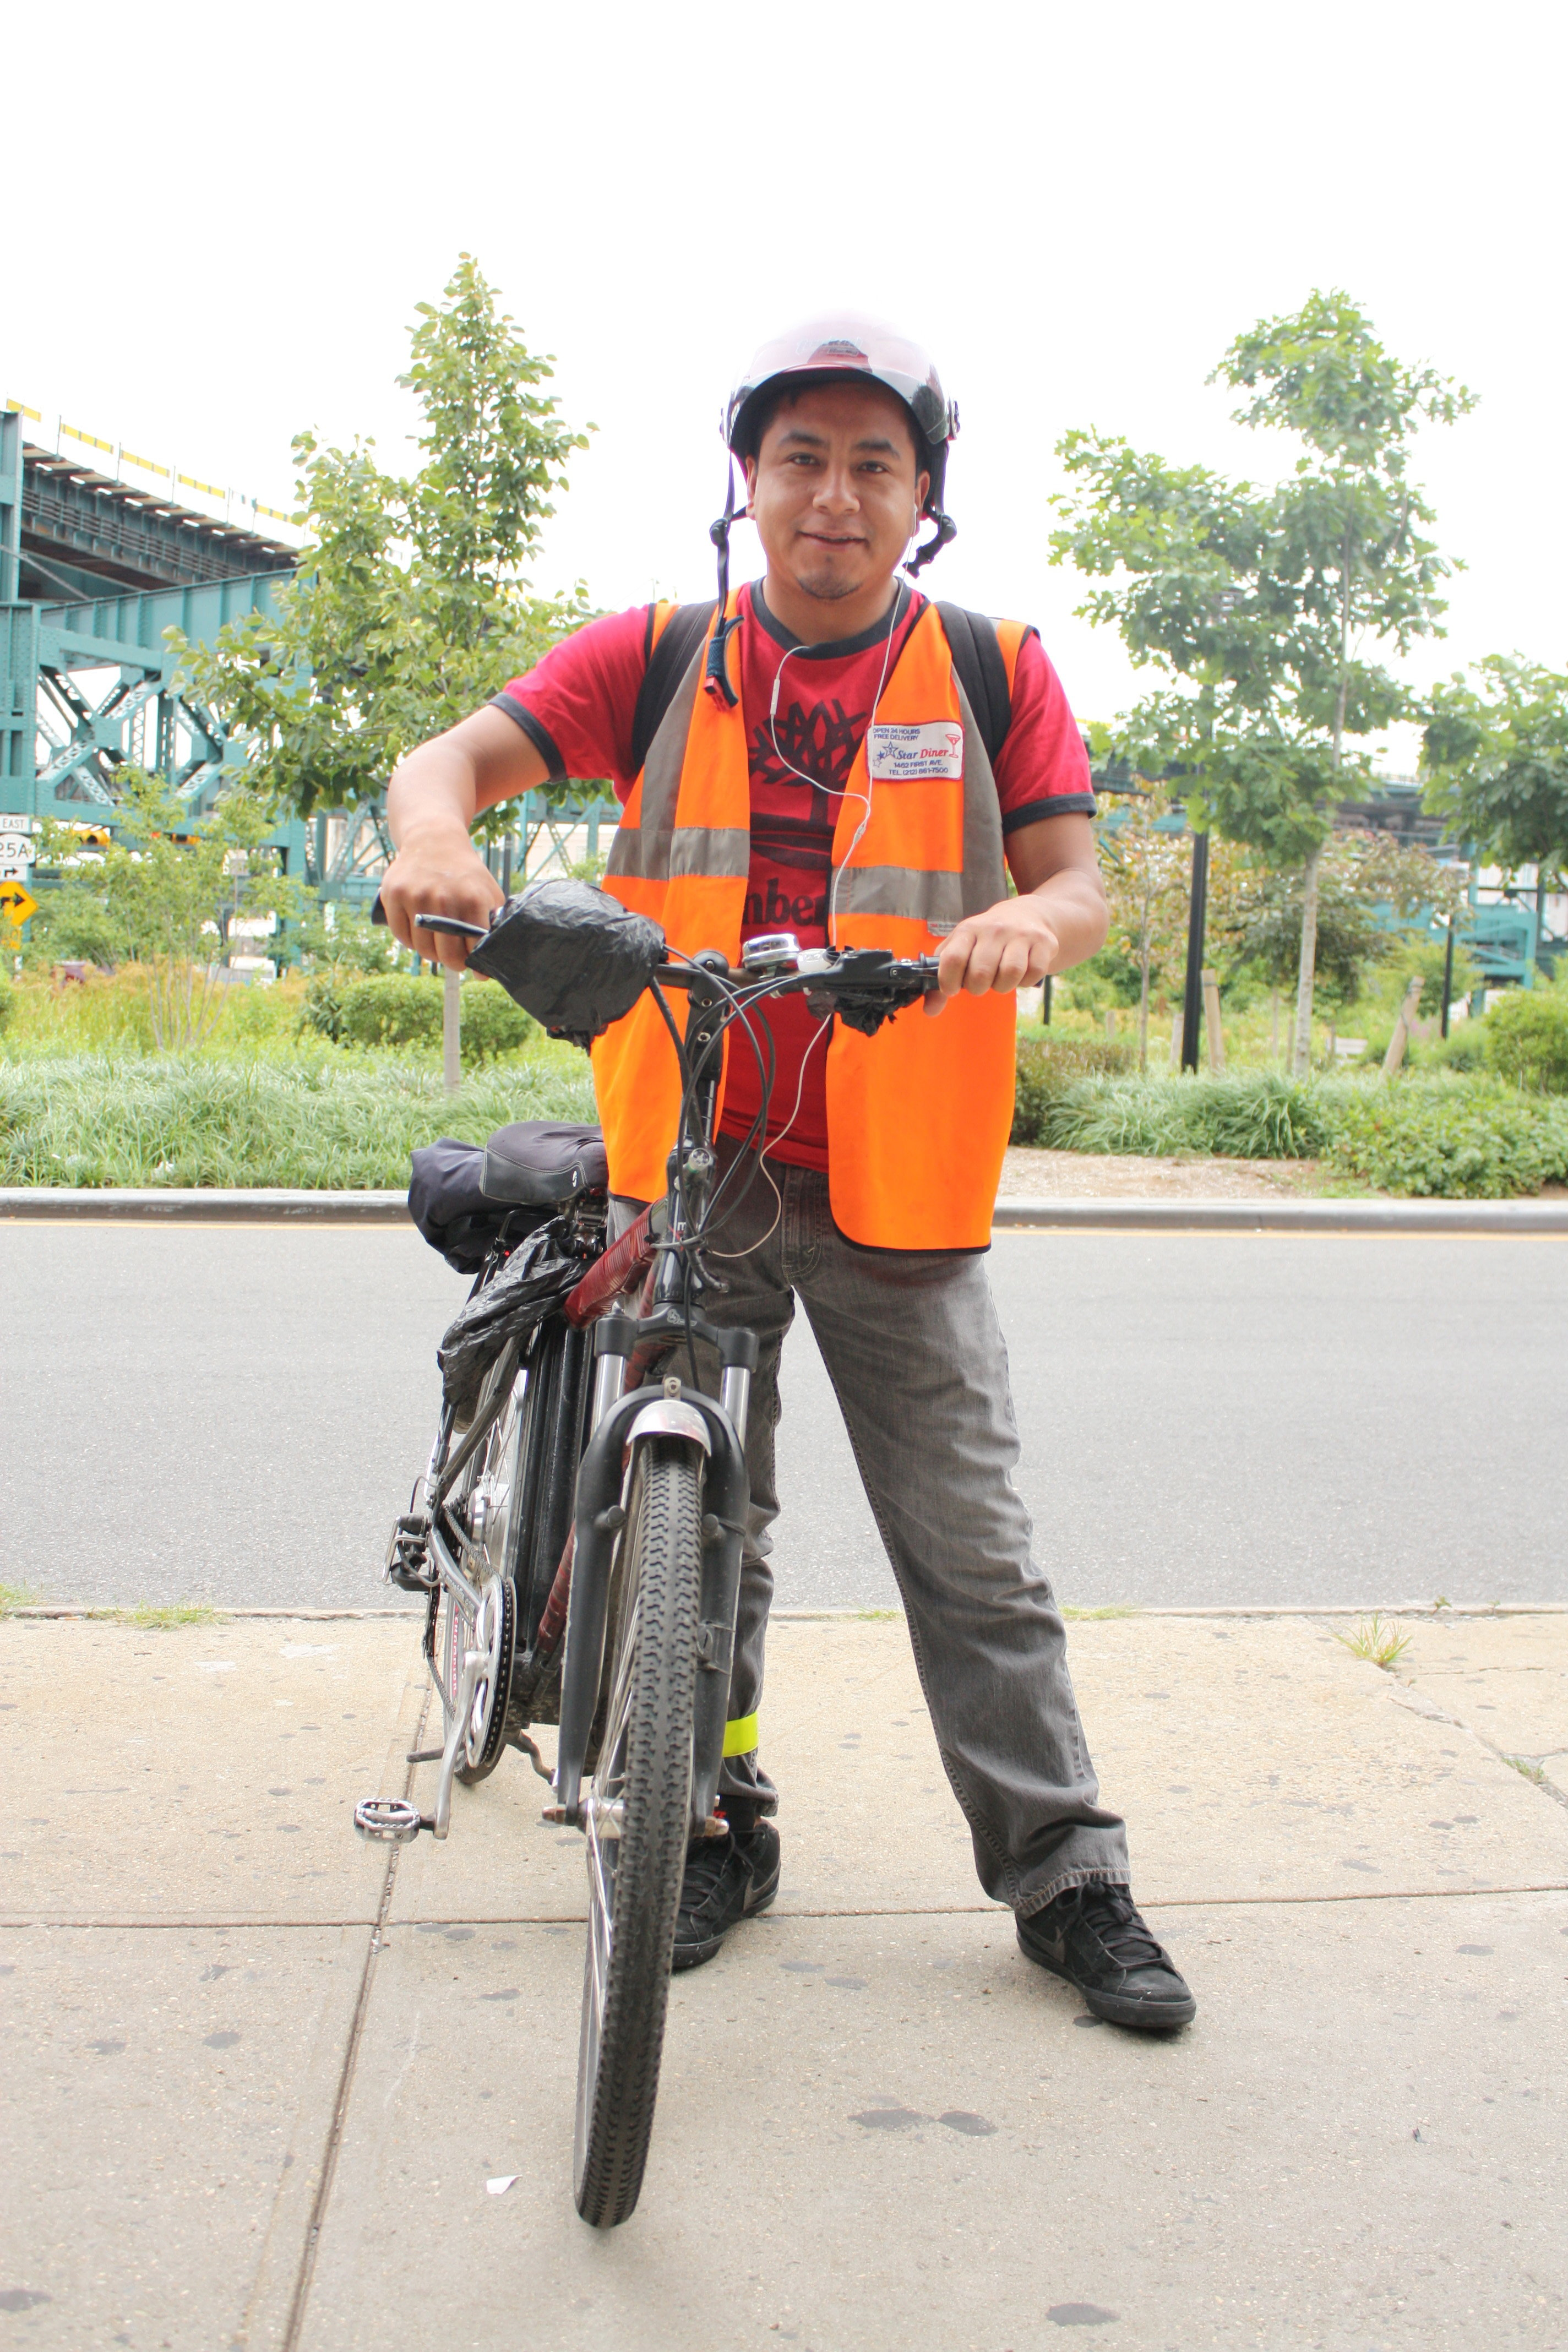 A delivery cyclist